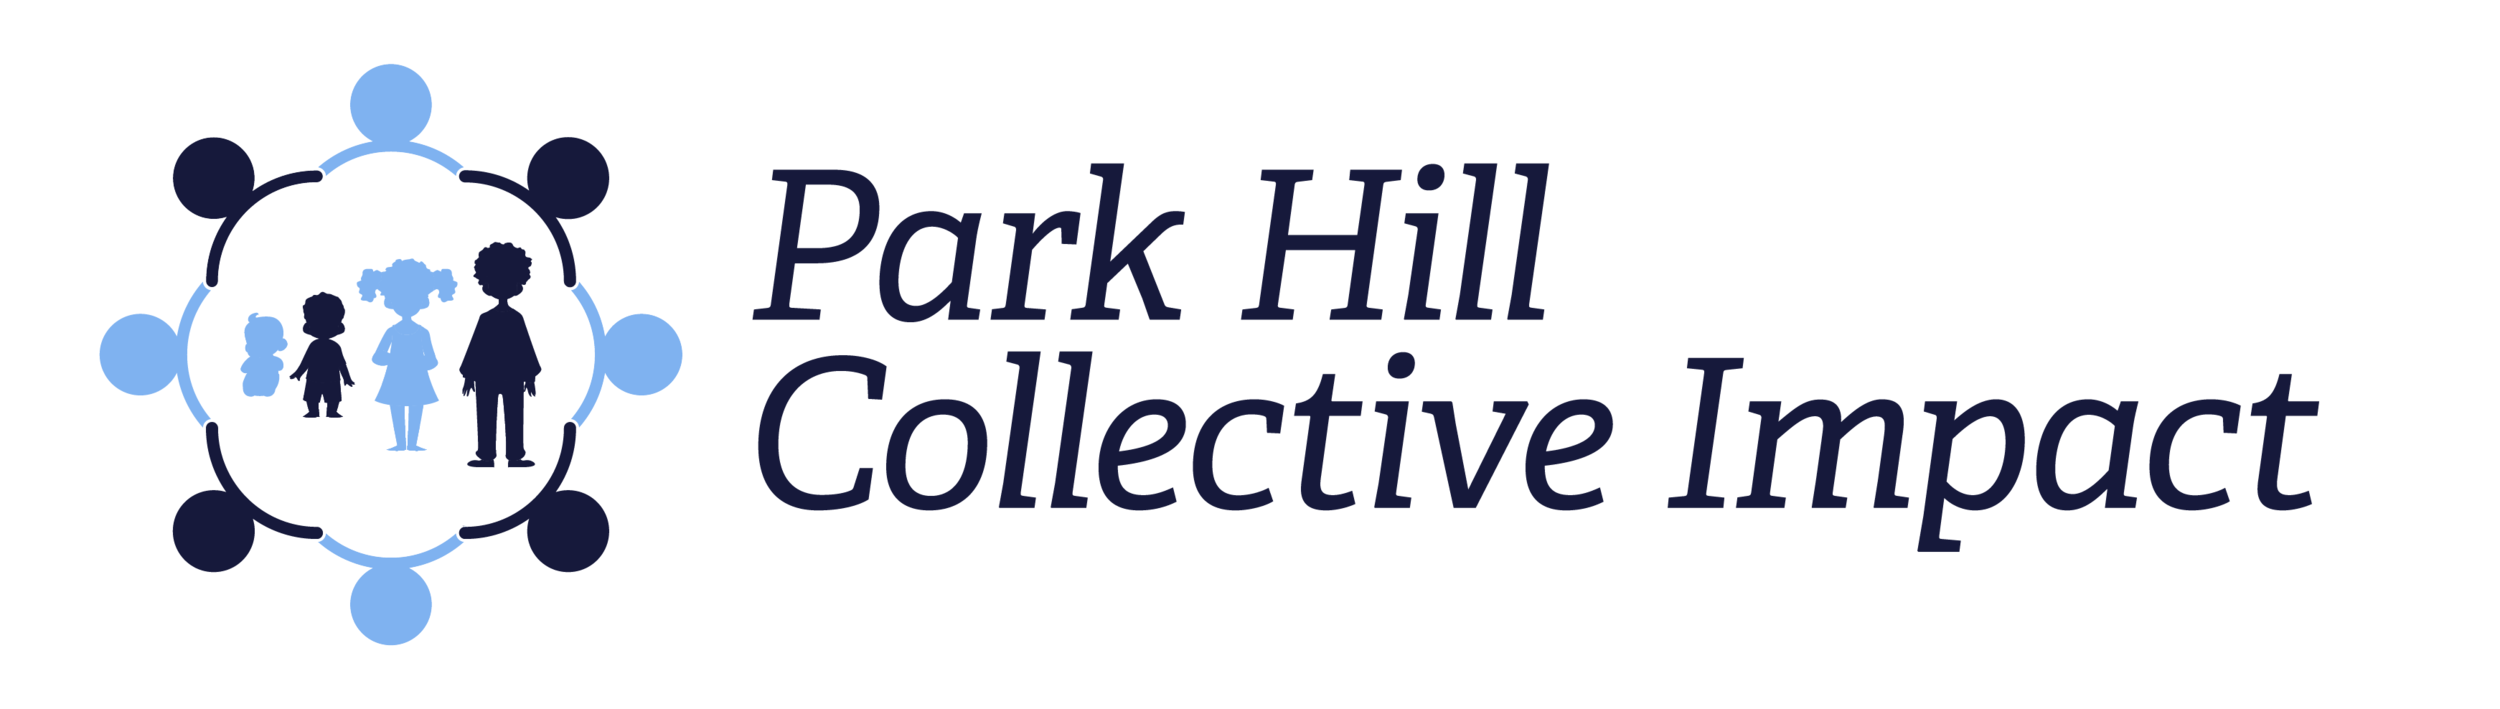 Official Logo Park Hill Collective Impact_navy letter.png